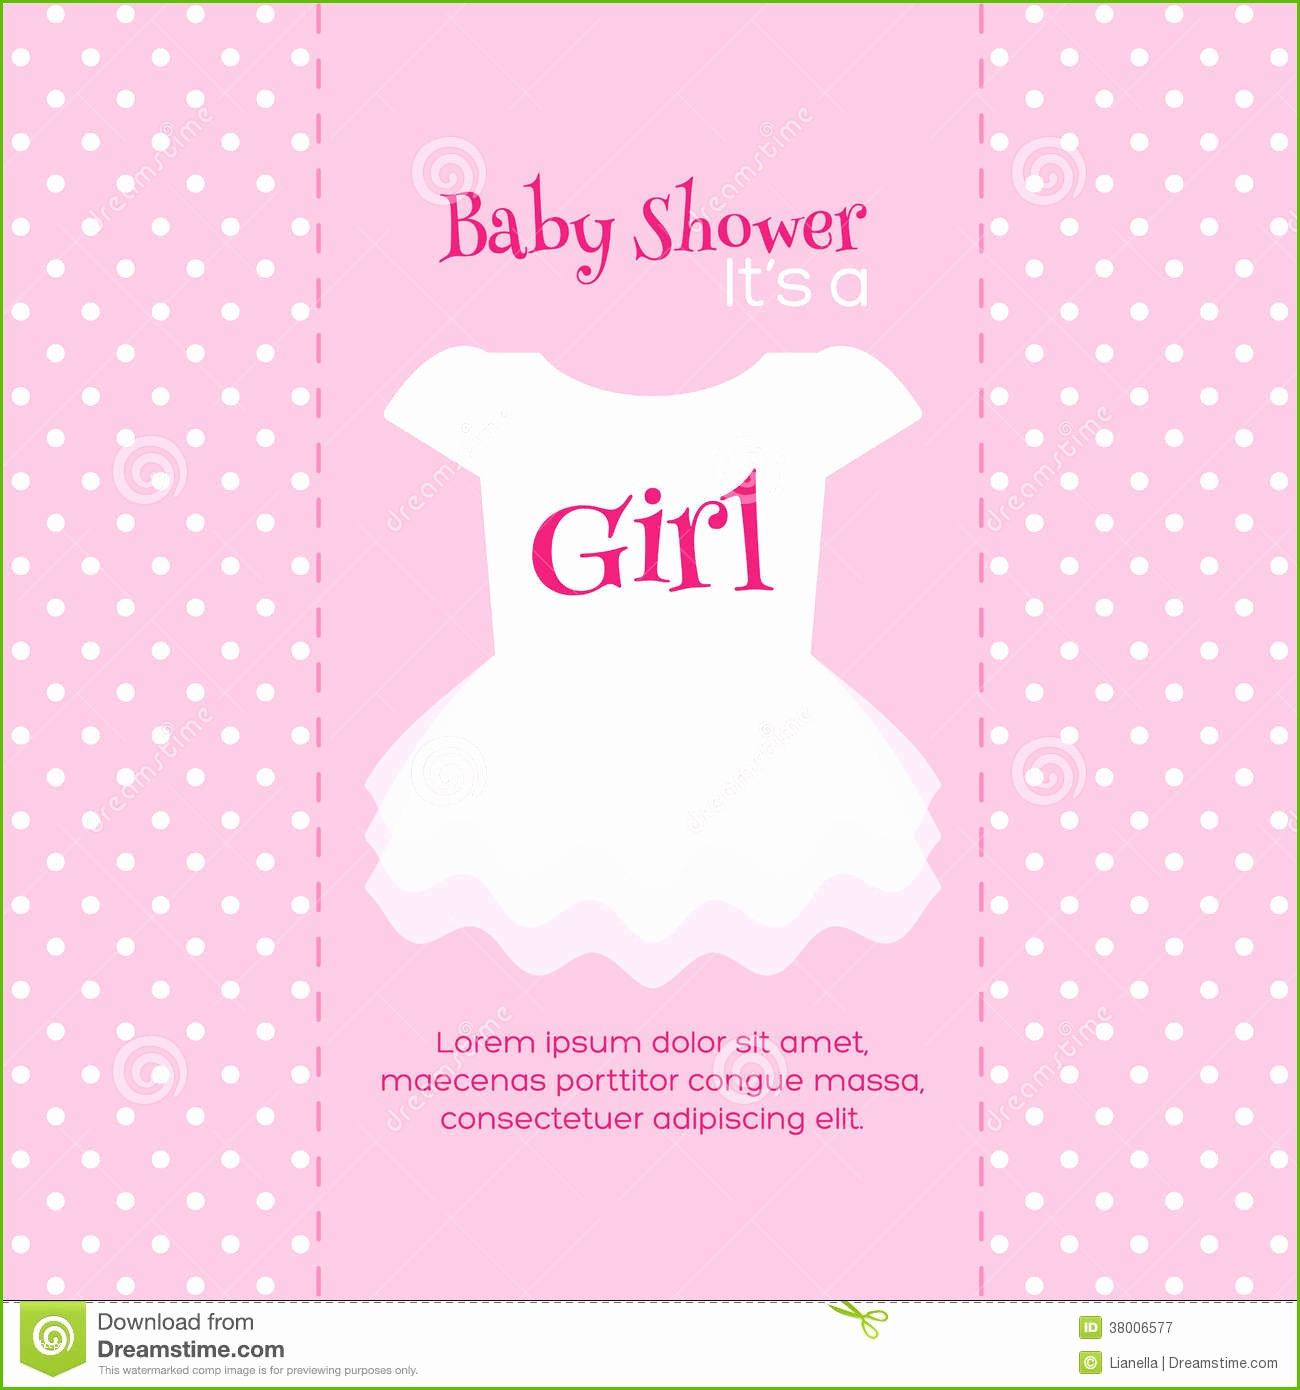 Elite Where To Have A Baby Shower Beautiful Free Printable Baby Shower regarding Free Places To Have A Baby Shower